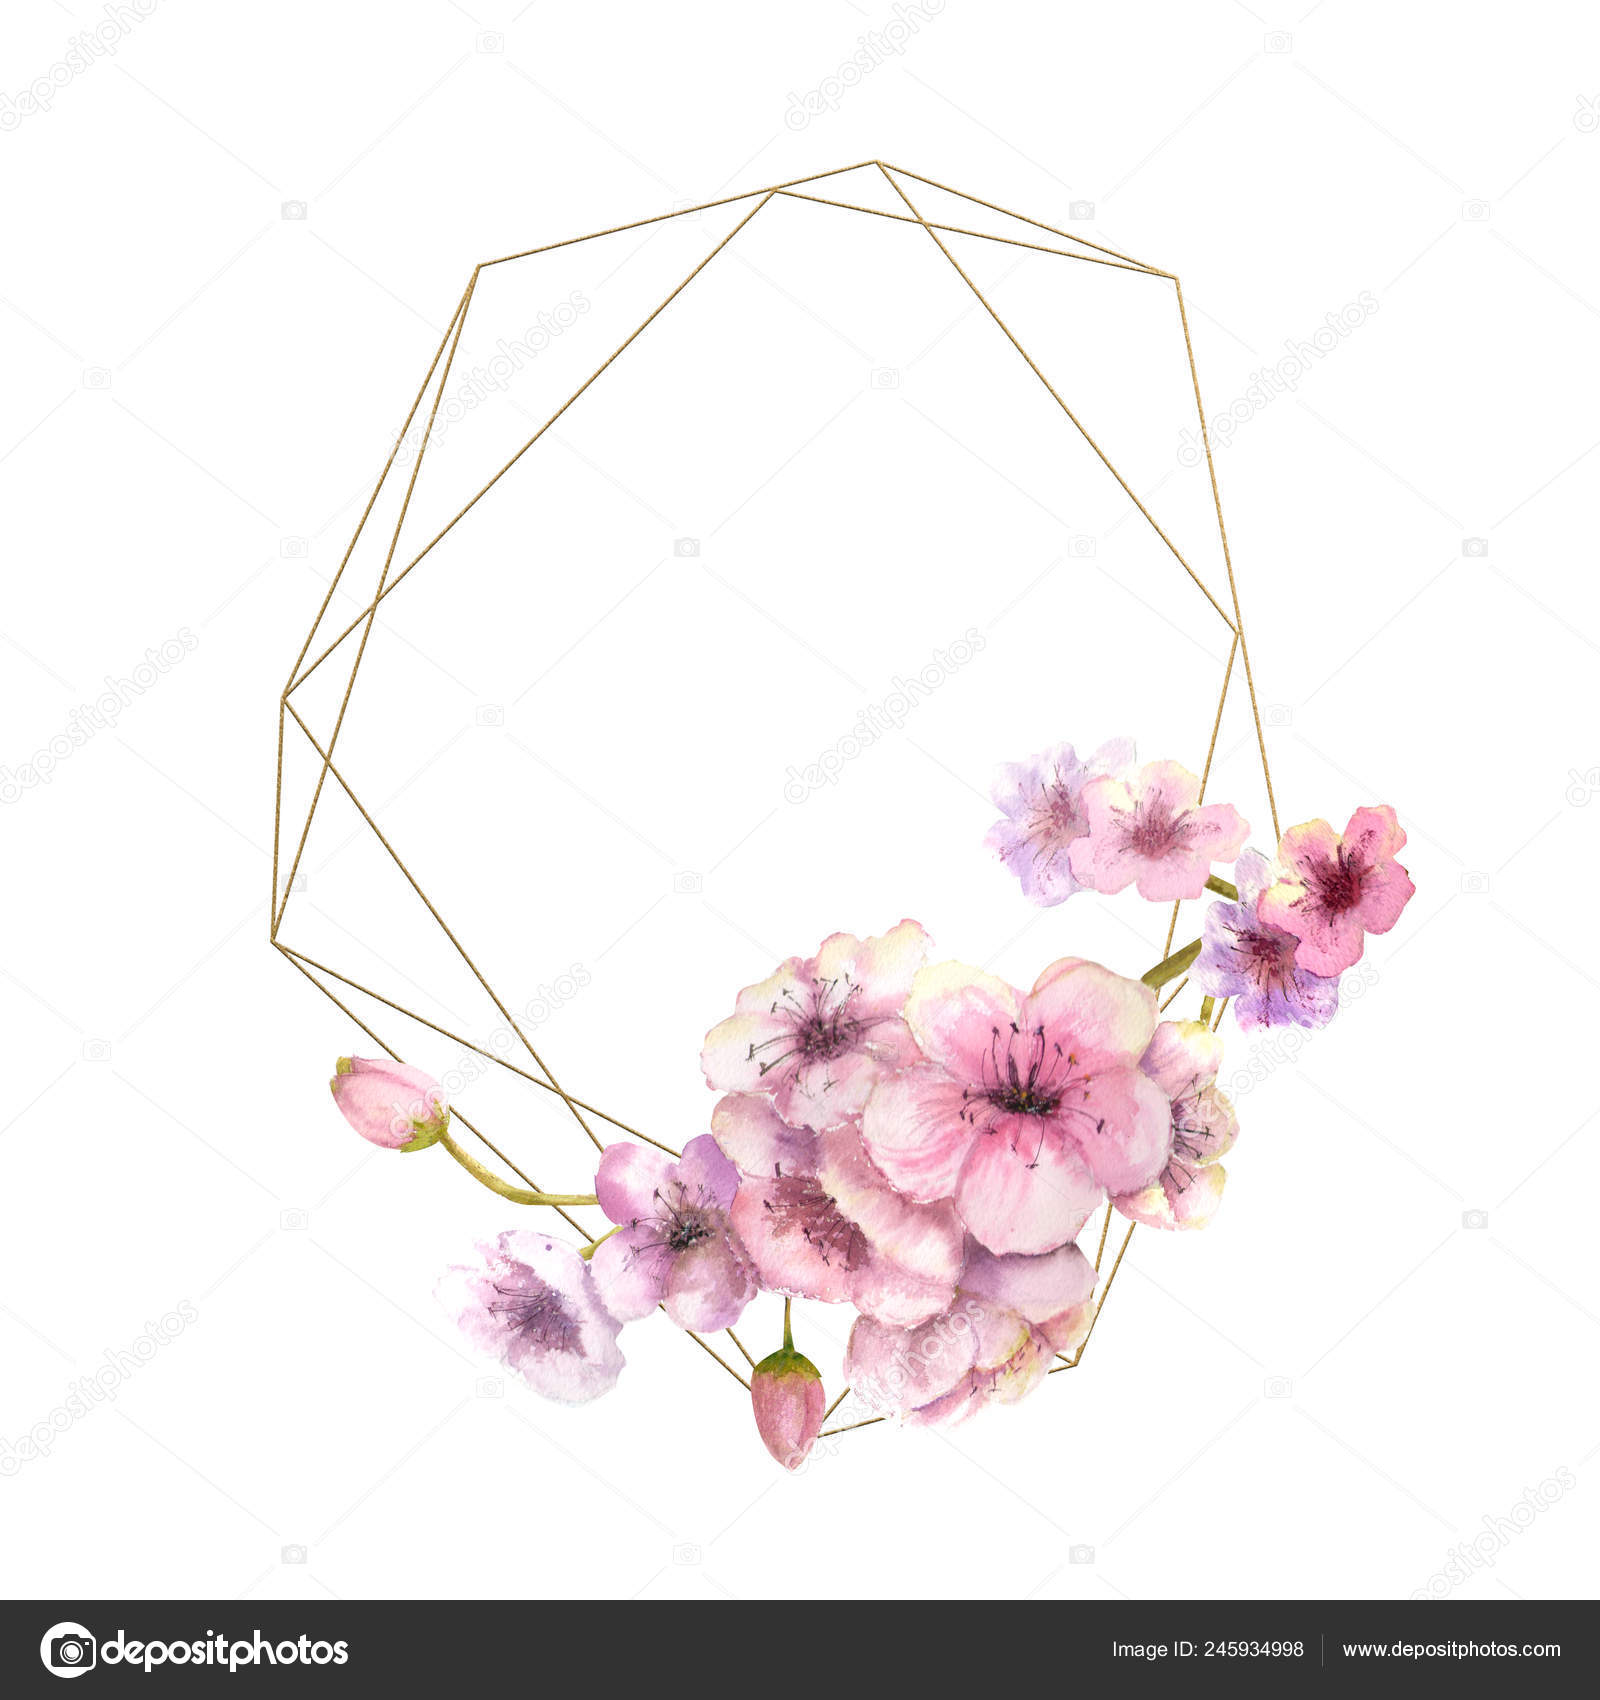 Cherry Blossom Sakura Branch Pink Flowers Gold Frame Isolated White Stock Photo Image By C Natika26042002 Gmail Com 245934998